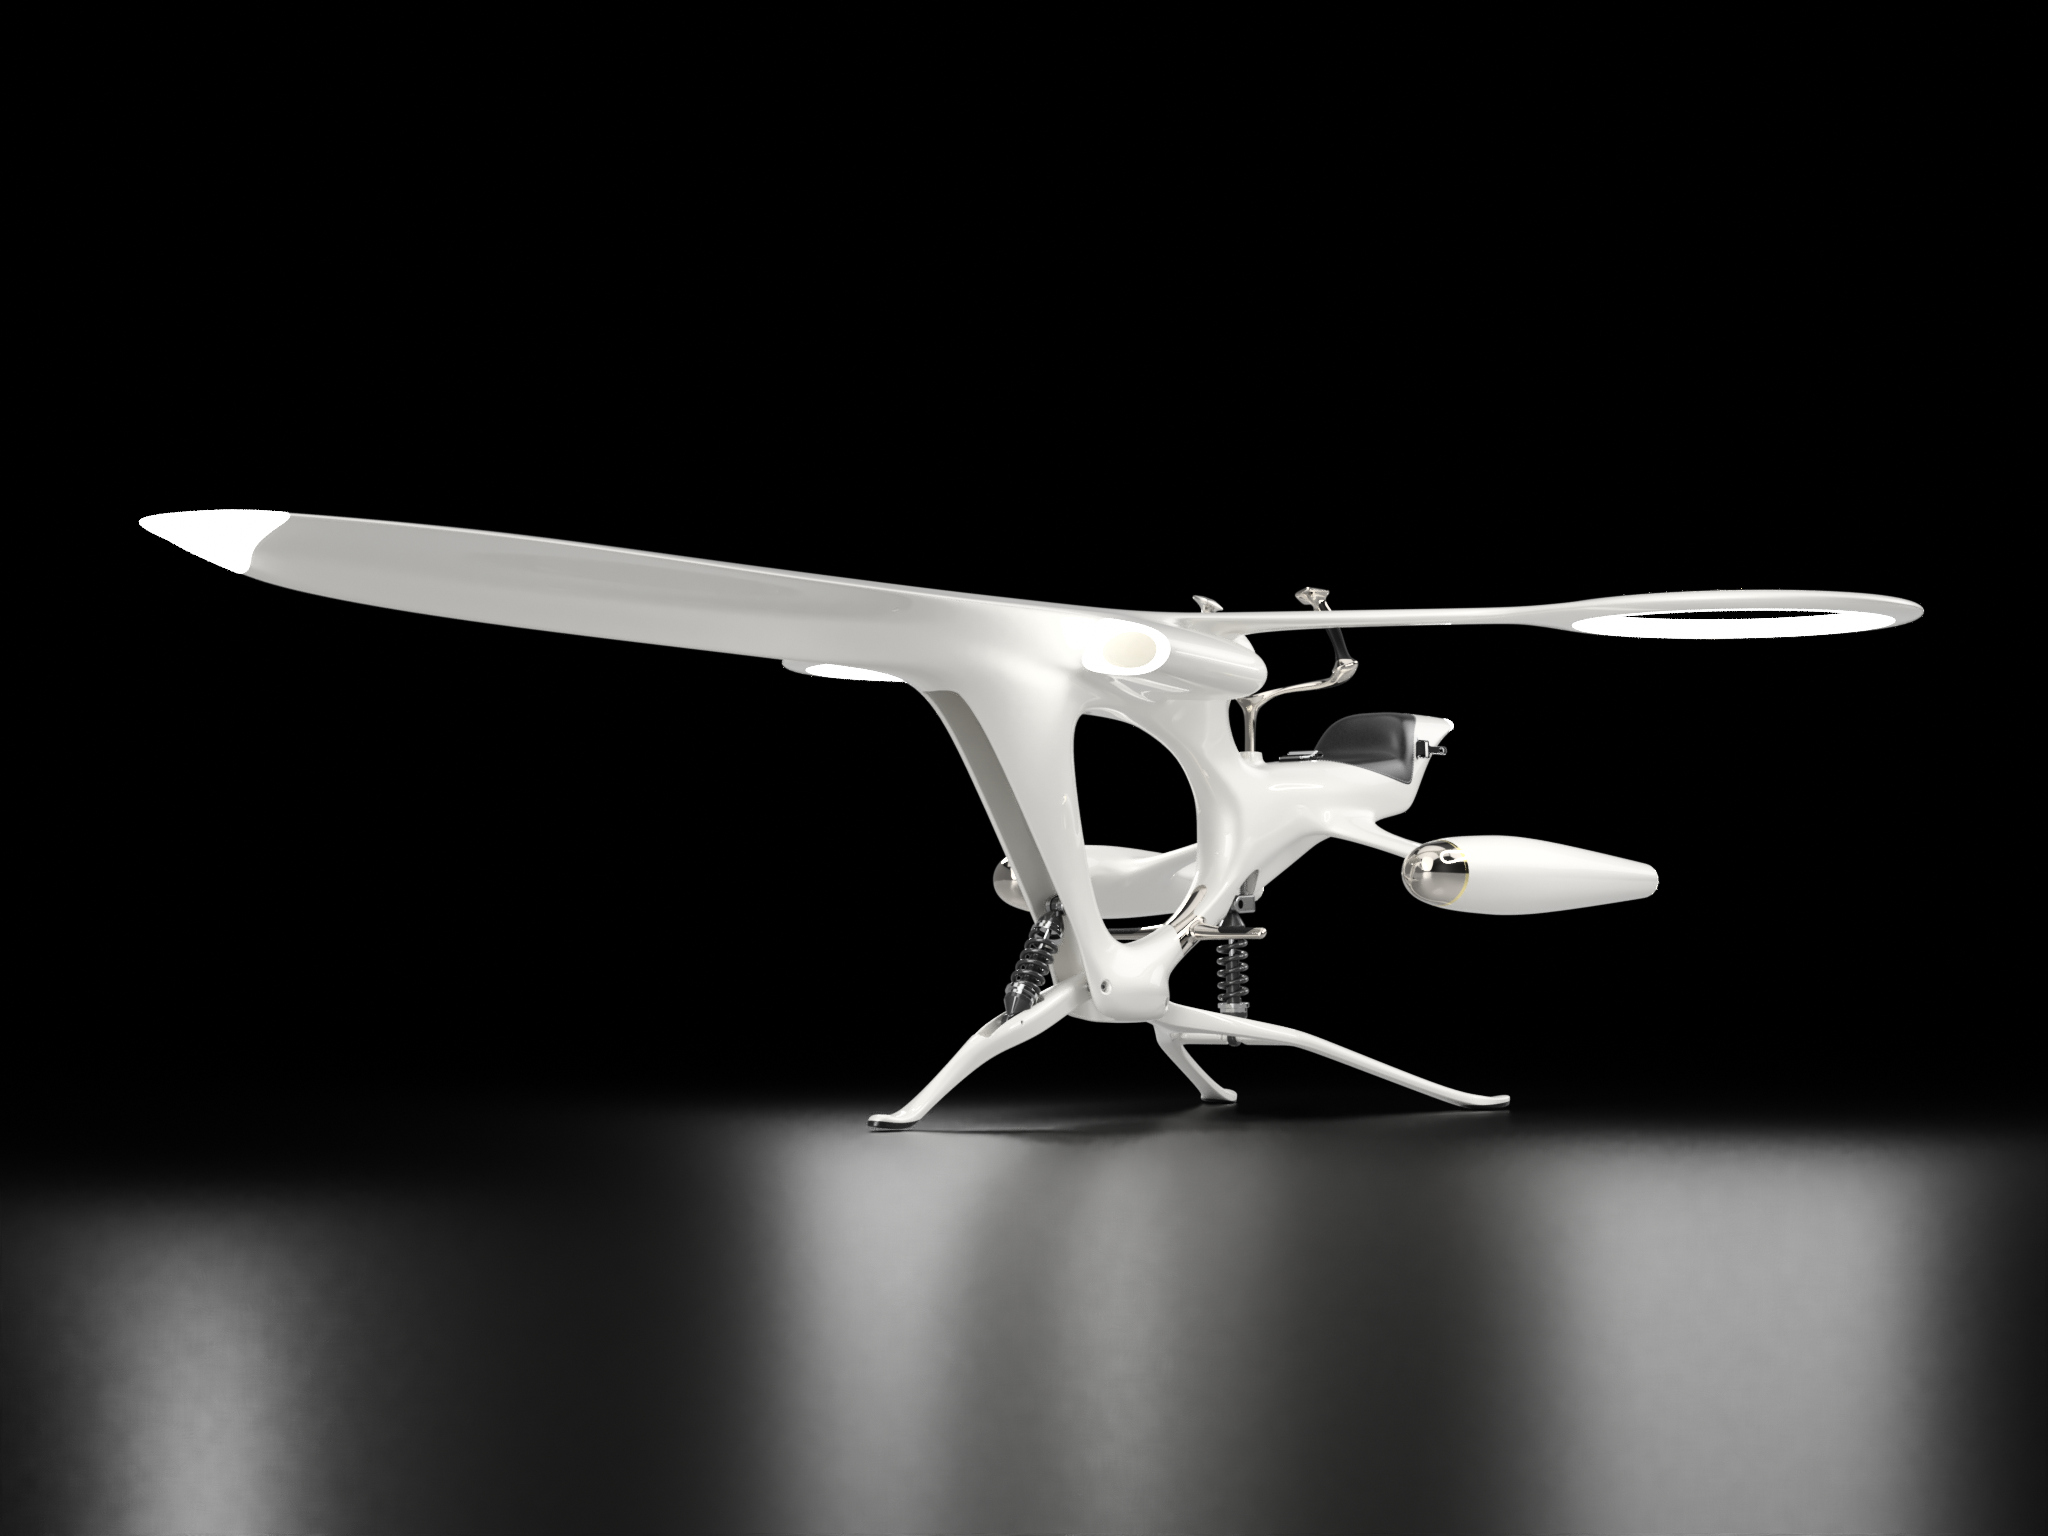 Drone Libellule pour Kossi Aguessy